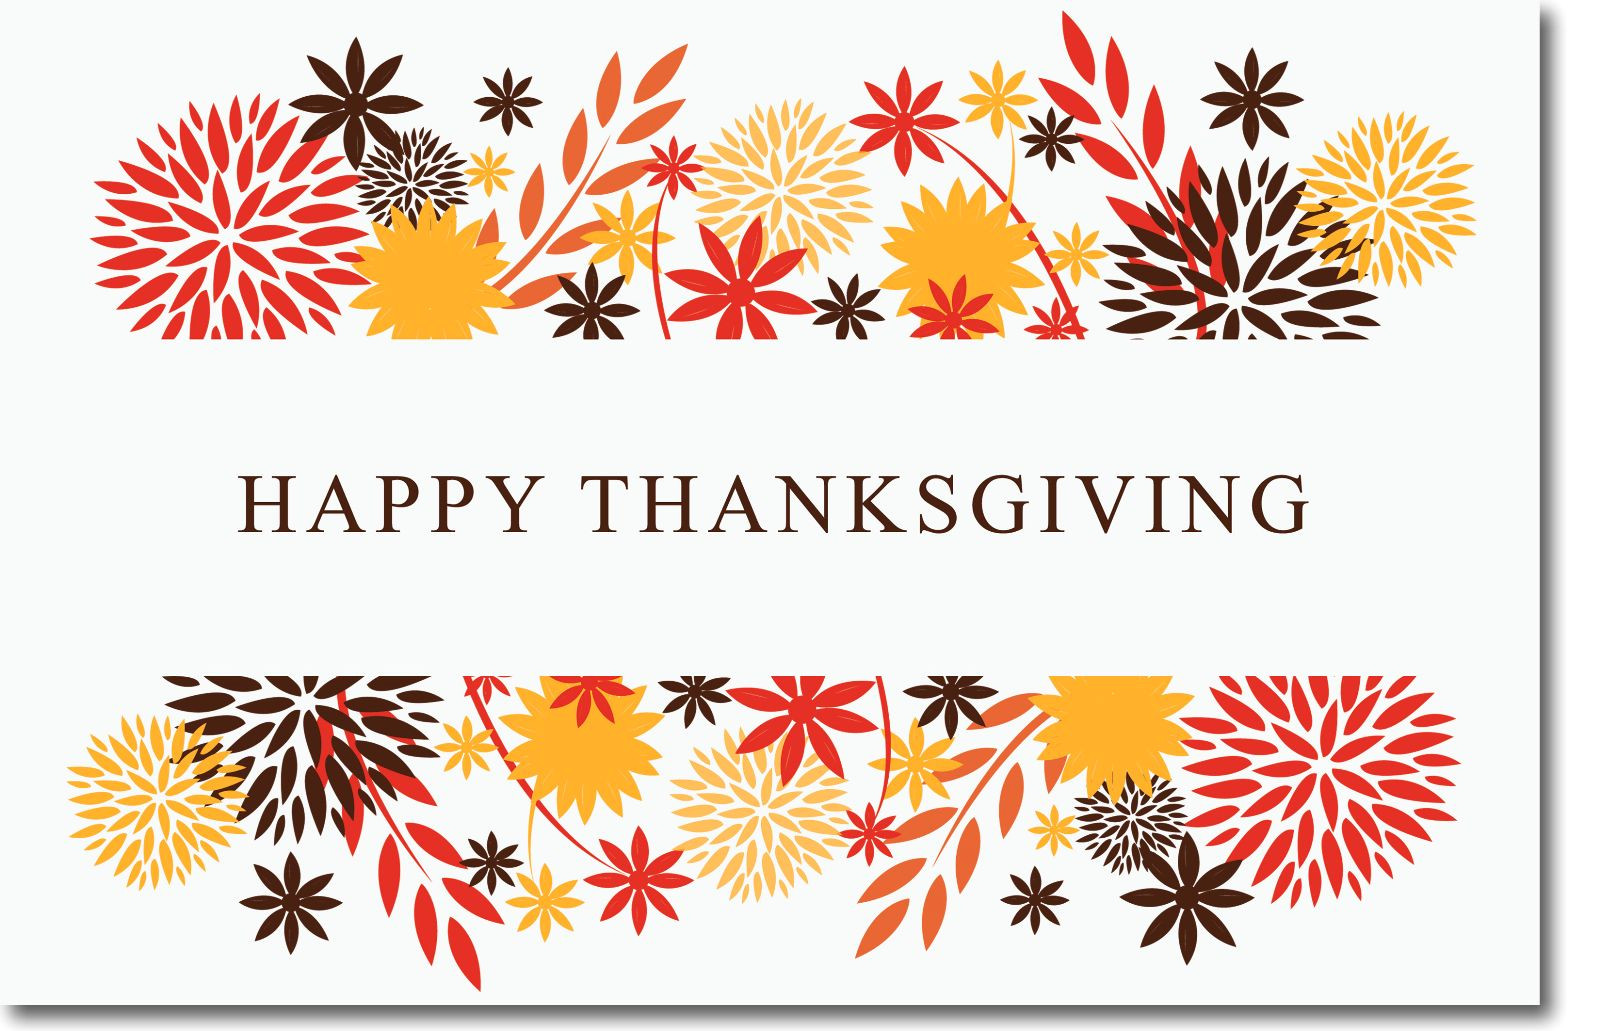 thanksgiving-closed-image-for-sign-template-7